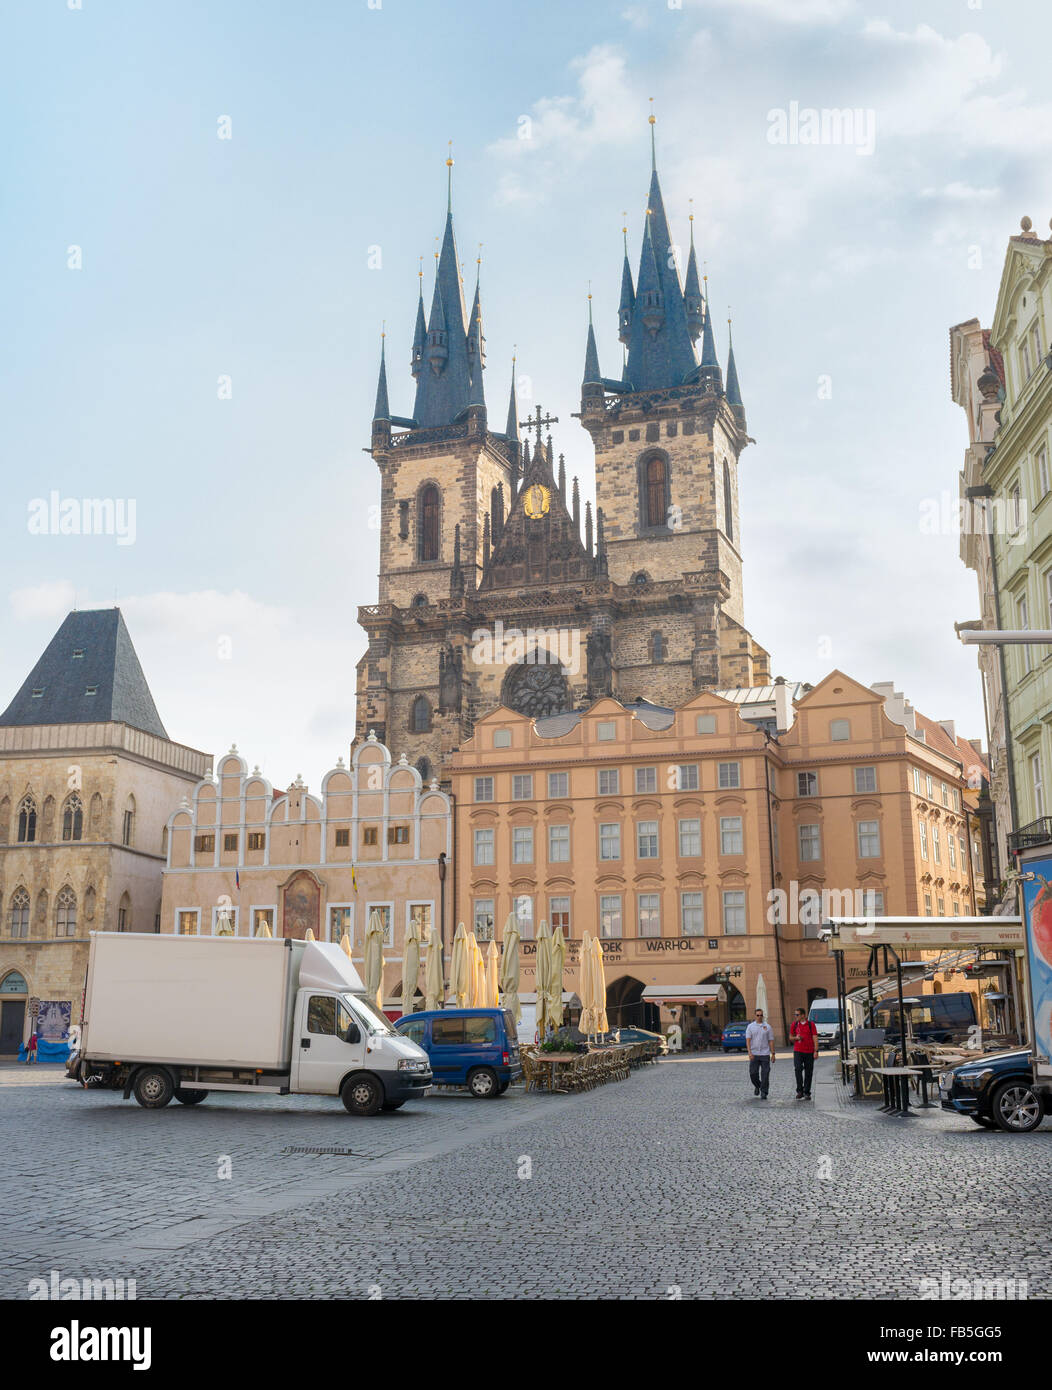 PRAGUE - AUGUST 4: everyday scenes of clock square at dawn, before it is full of people  on august 4,2015 in Prague - Stock Image